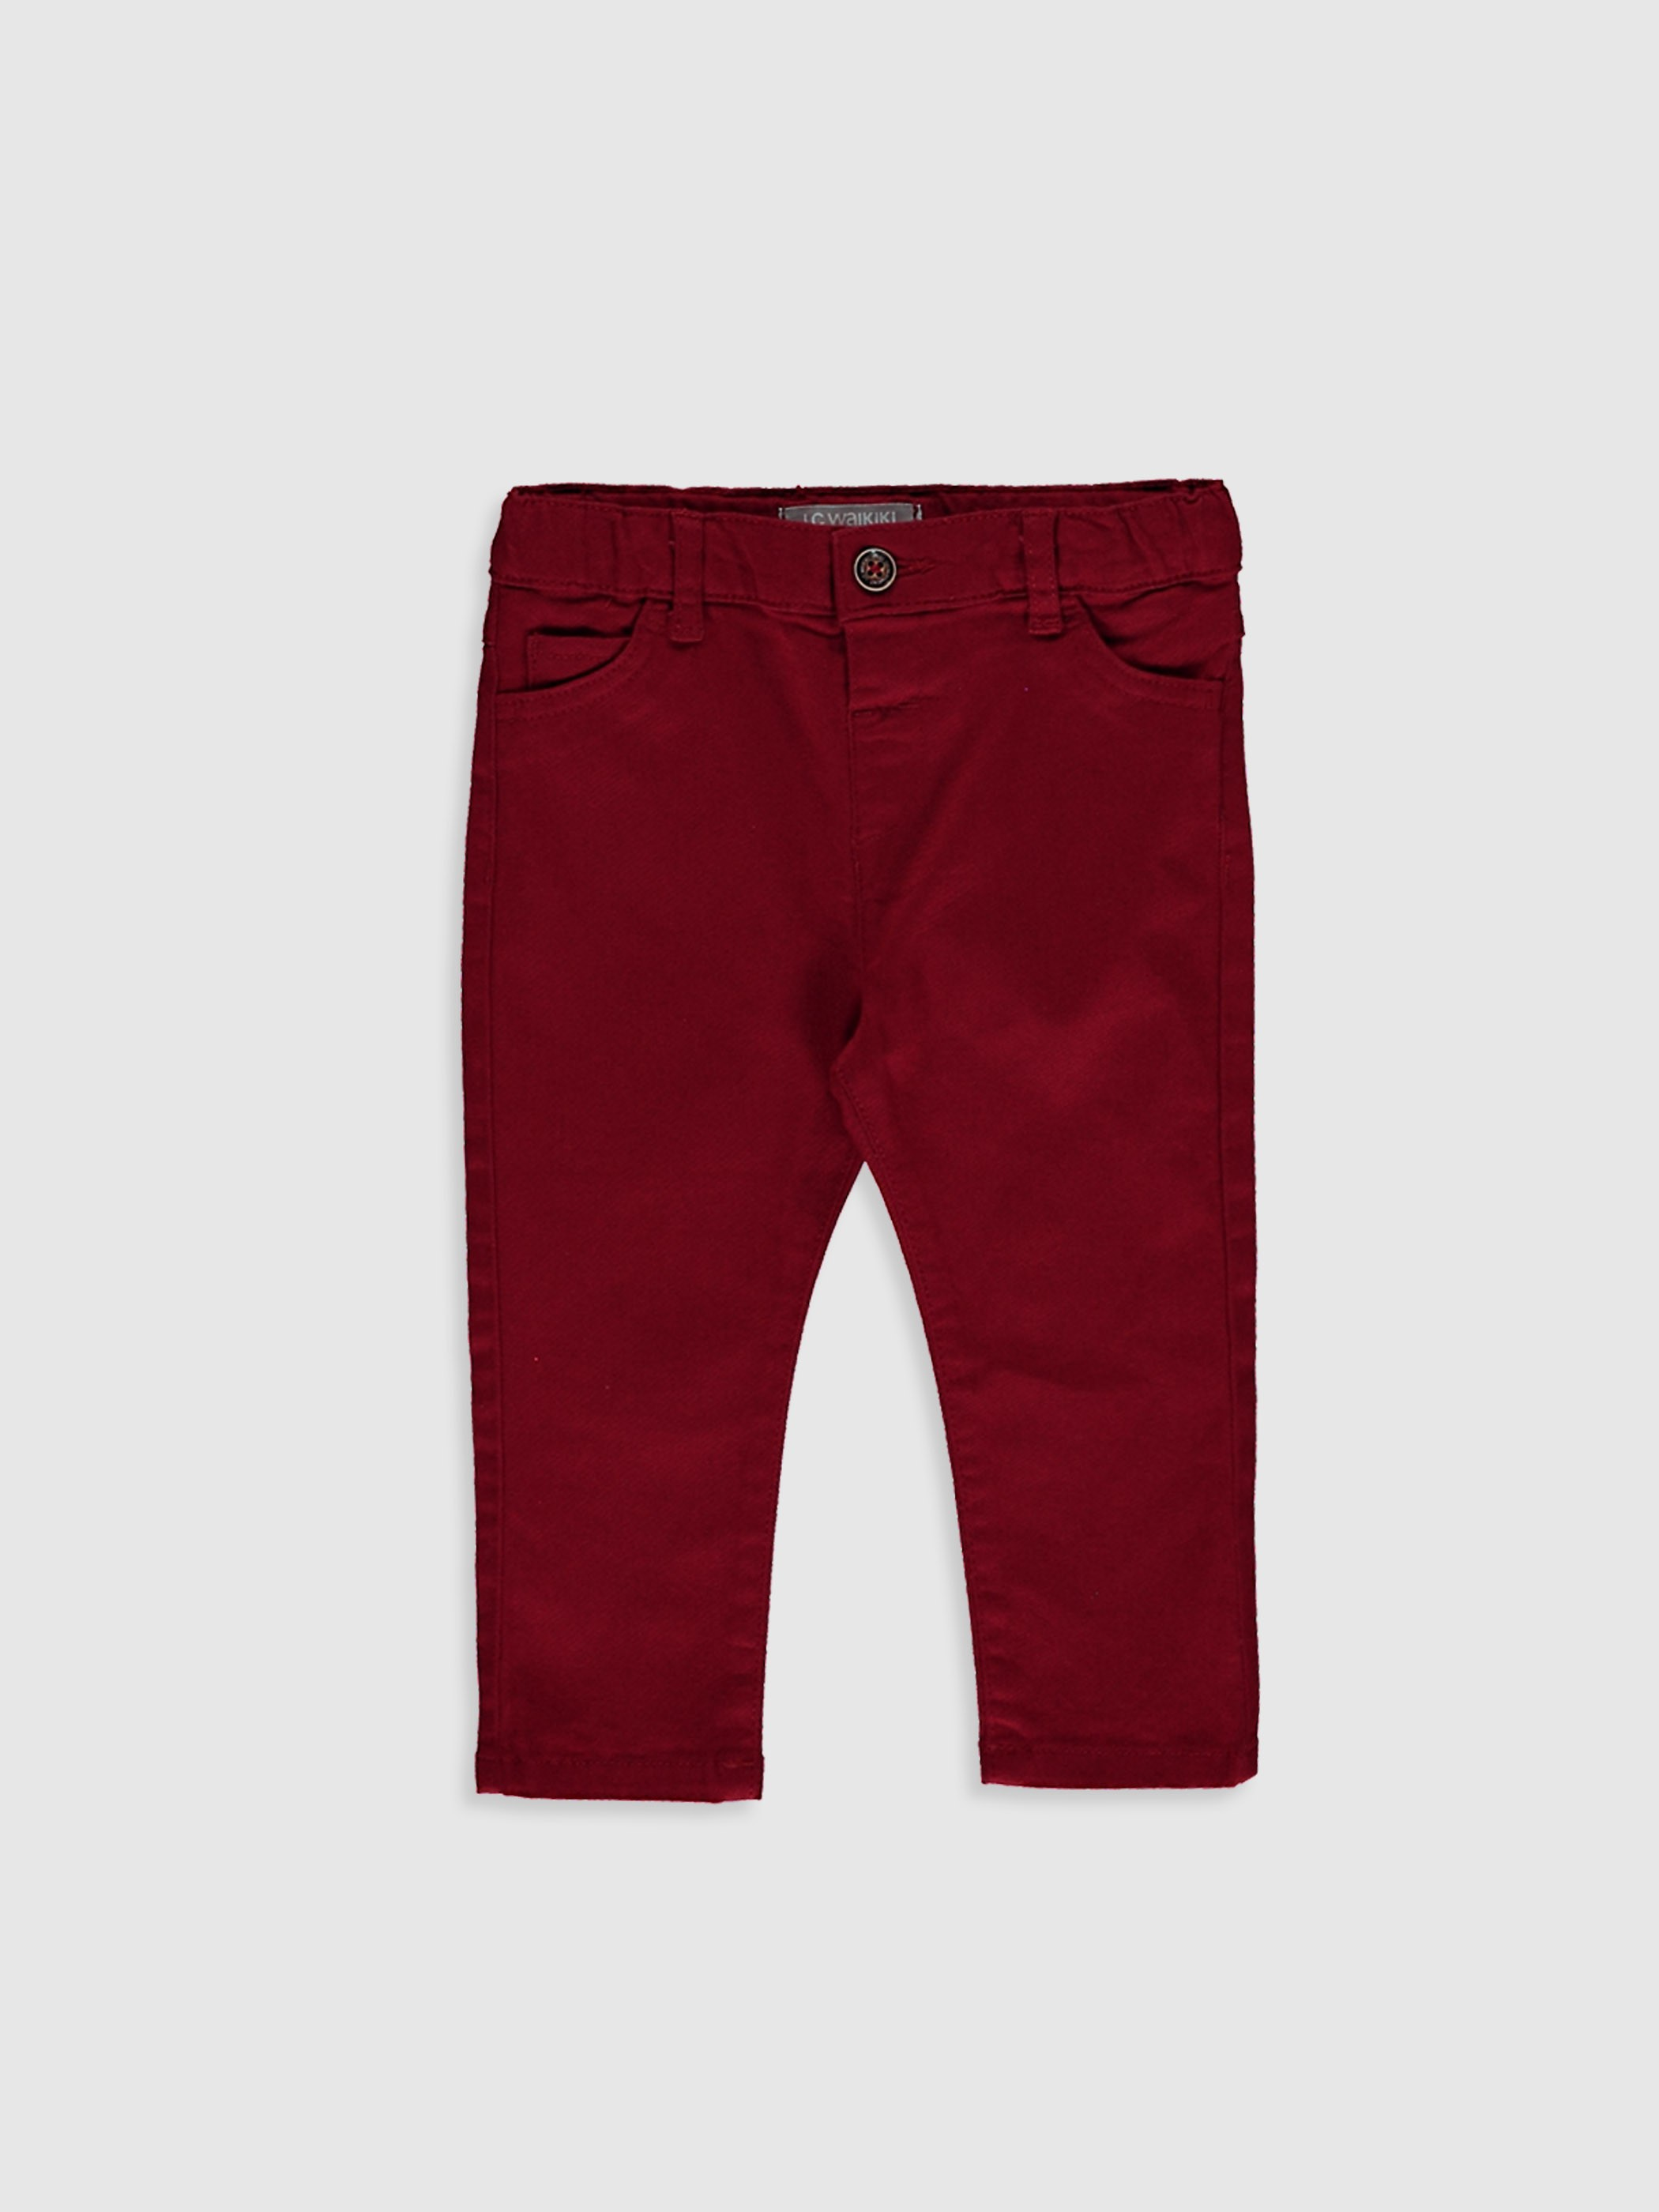 RED - Baby Boy's Cotton Trousers - 0SQ605Z1